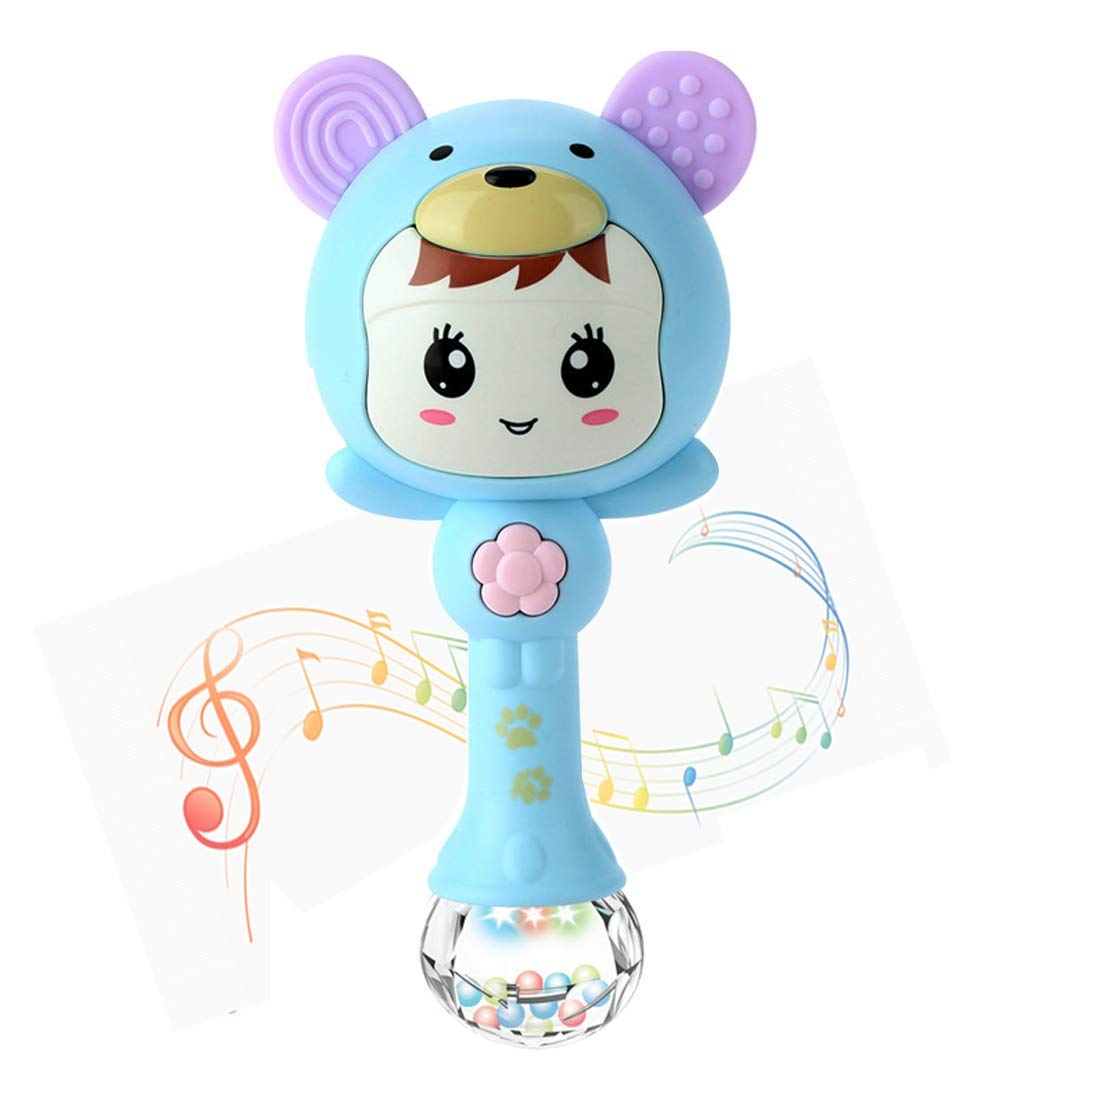 Cheap 3 Months Baby Toy Find 3 Months Baby Toy Deals On Line At